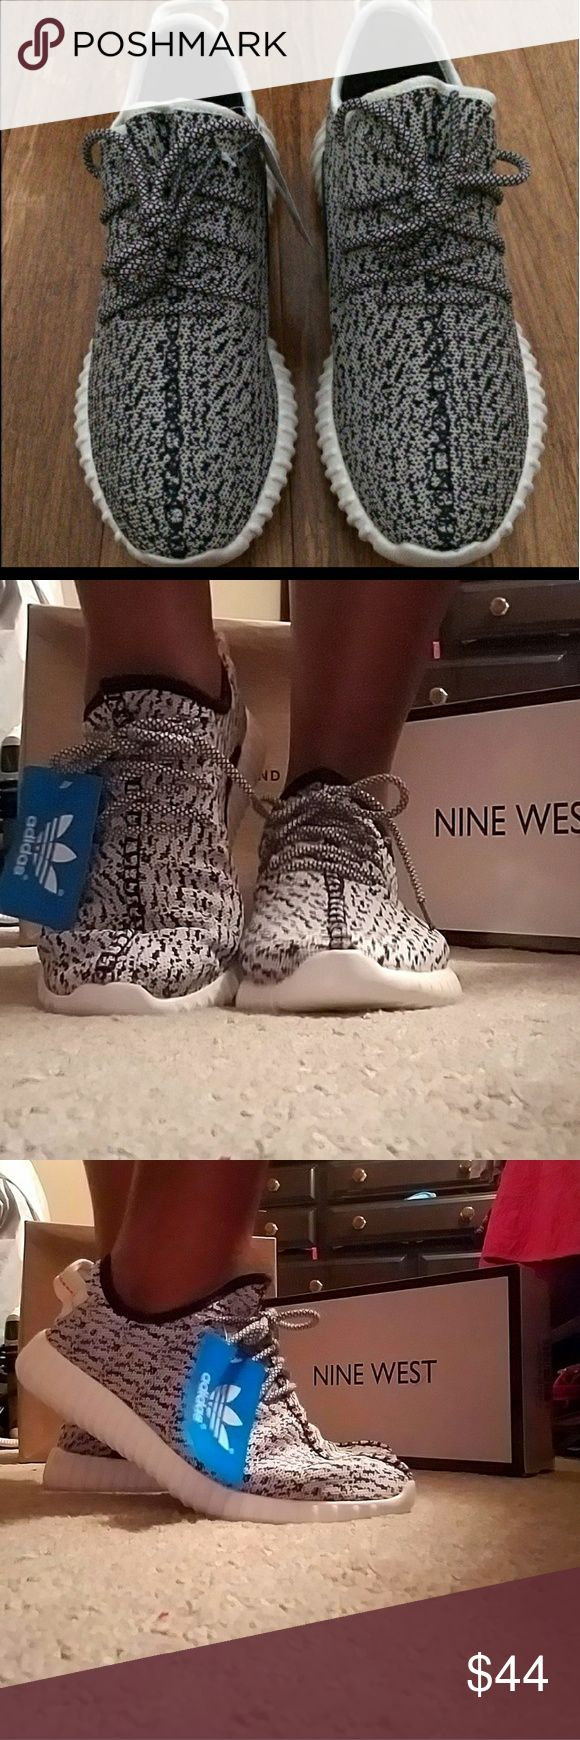 NON AUTHENTIC YEEZYS Great pair of replicas! Brand new and never worn! Please know NO TRADES and PRICES FIRM!  🦋 adidas Shoes Athletic Shoes